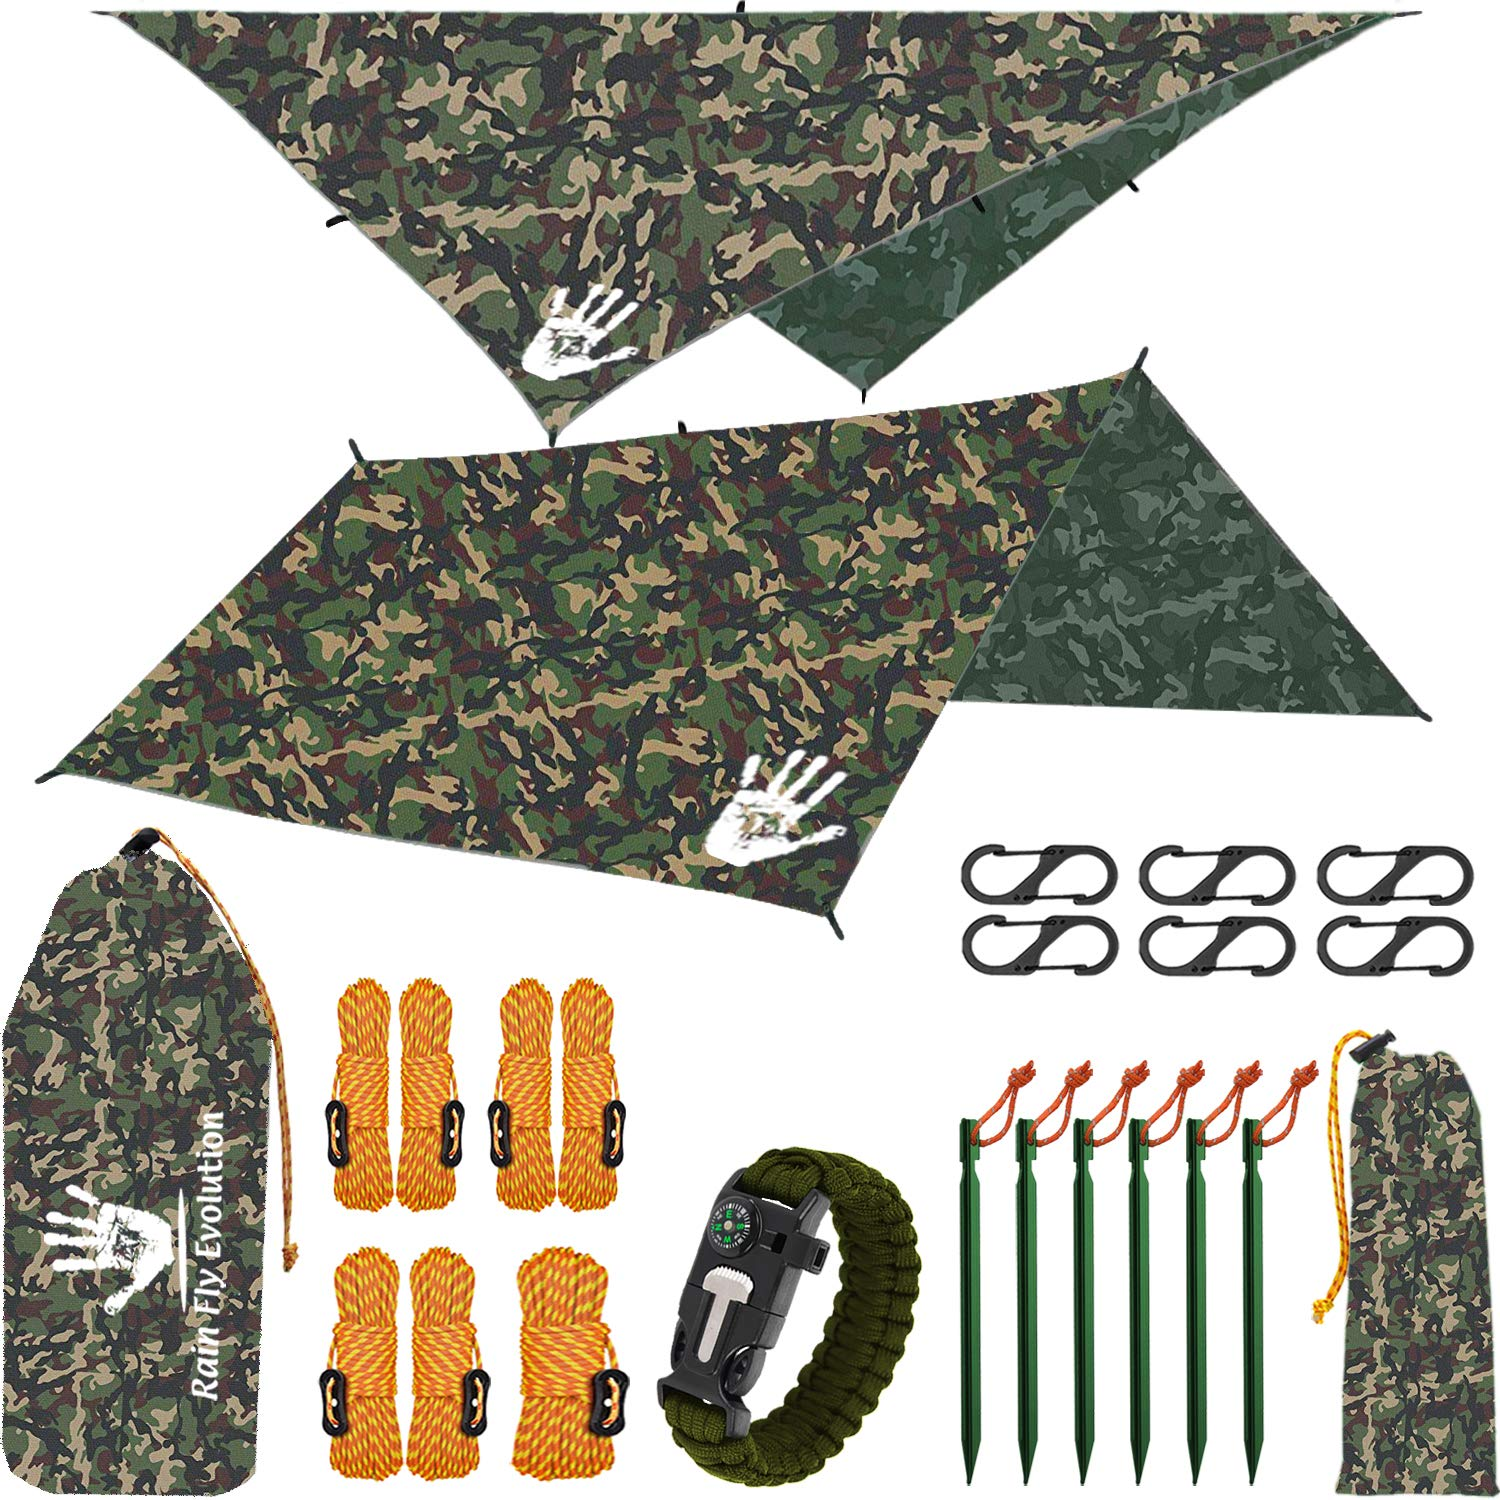 RainFlyEVOLUTION 10 x 10 ft Hammock Waterproof Camo RAIN Fly Tent TARP 170'' Centerline & Survival Bracelet Kit - Lightweight - Backpacking Approved - Perfect Hammock Shelter Sunshade for Camping by Best Choice Products